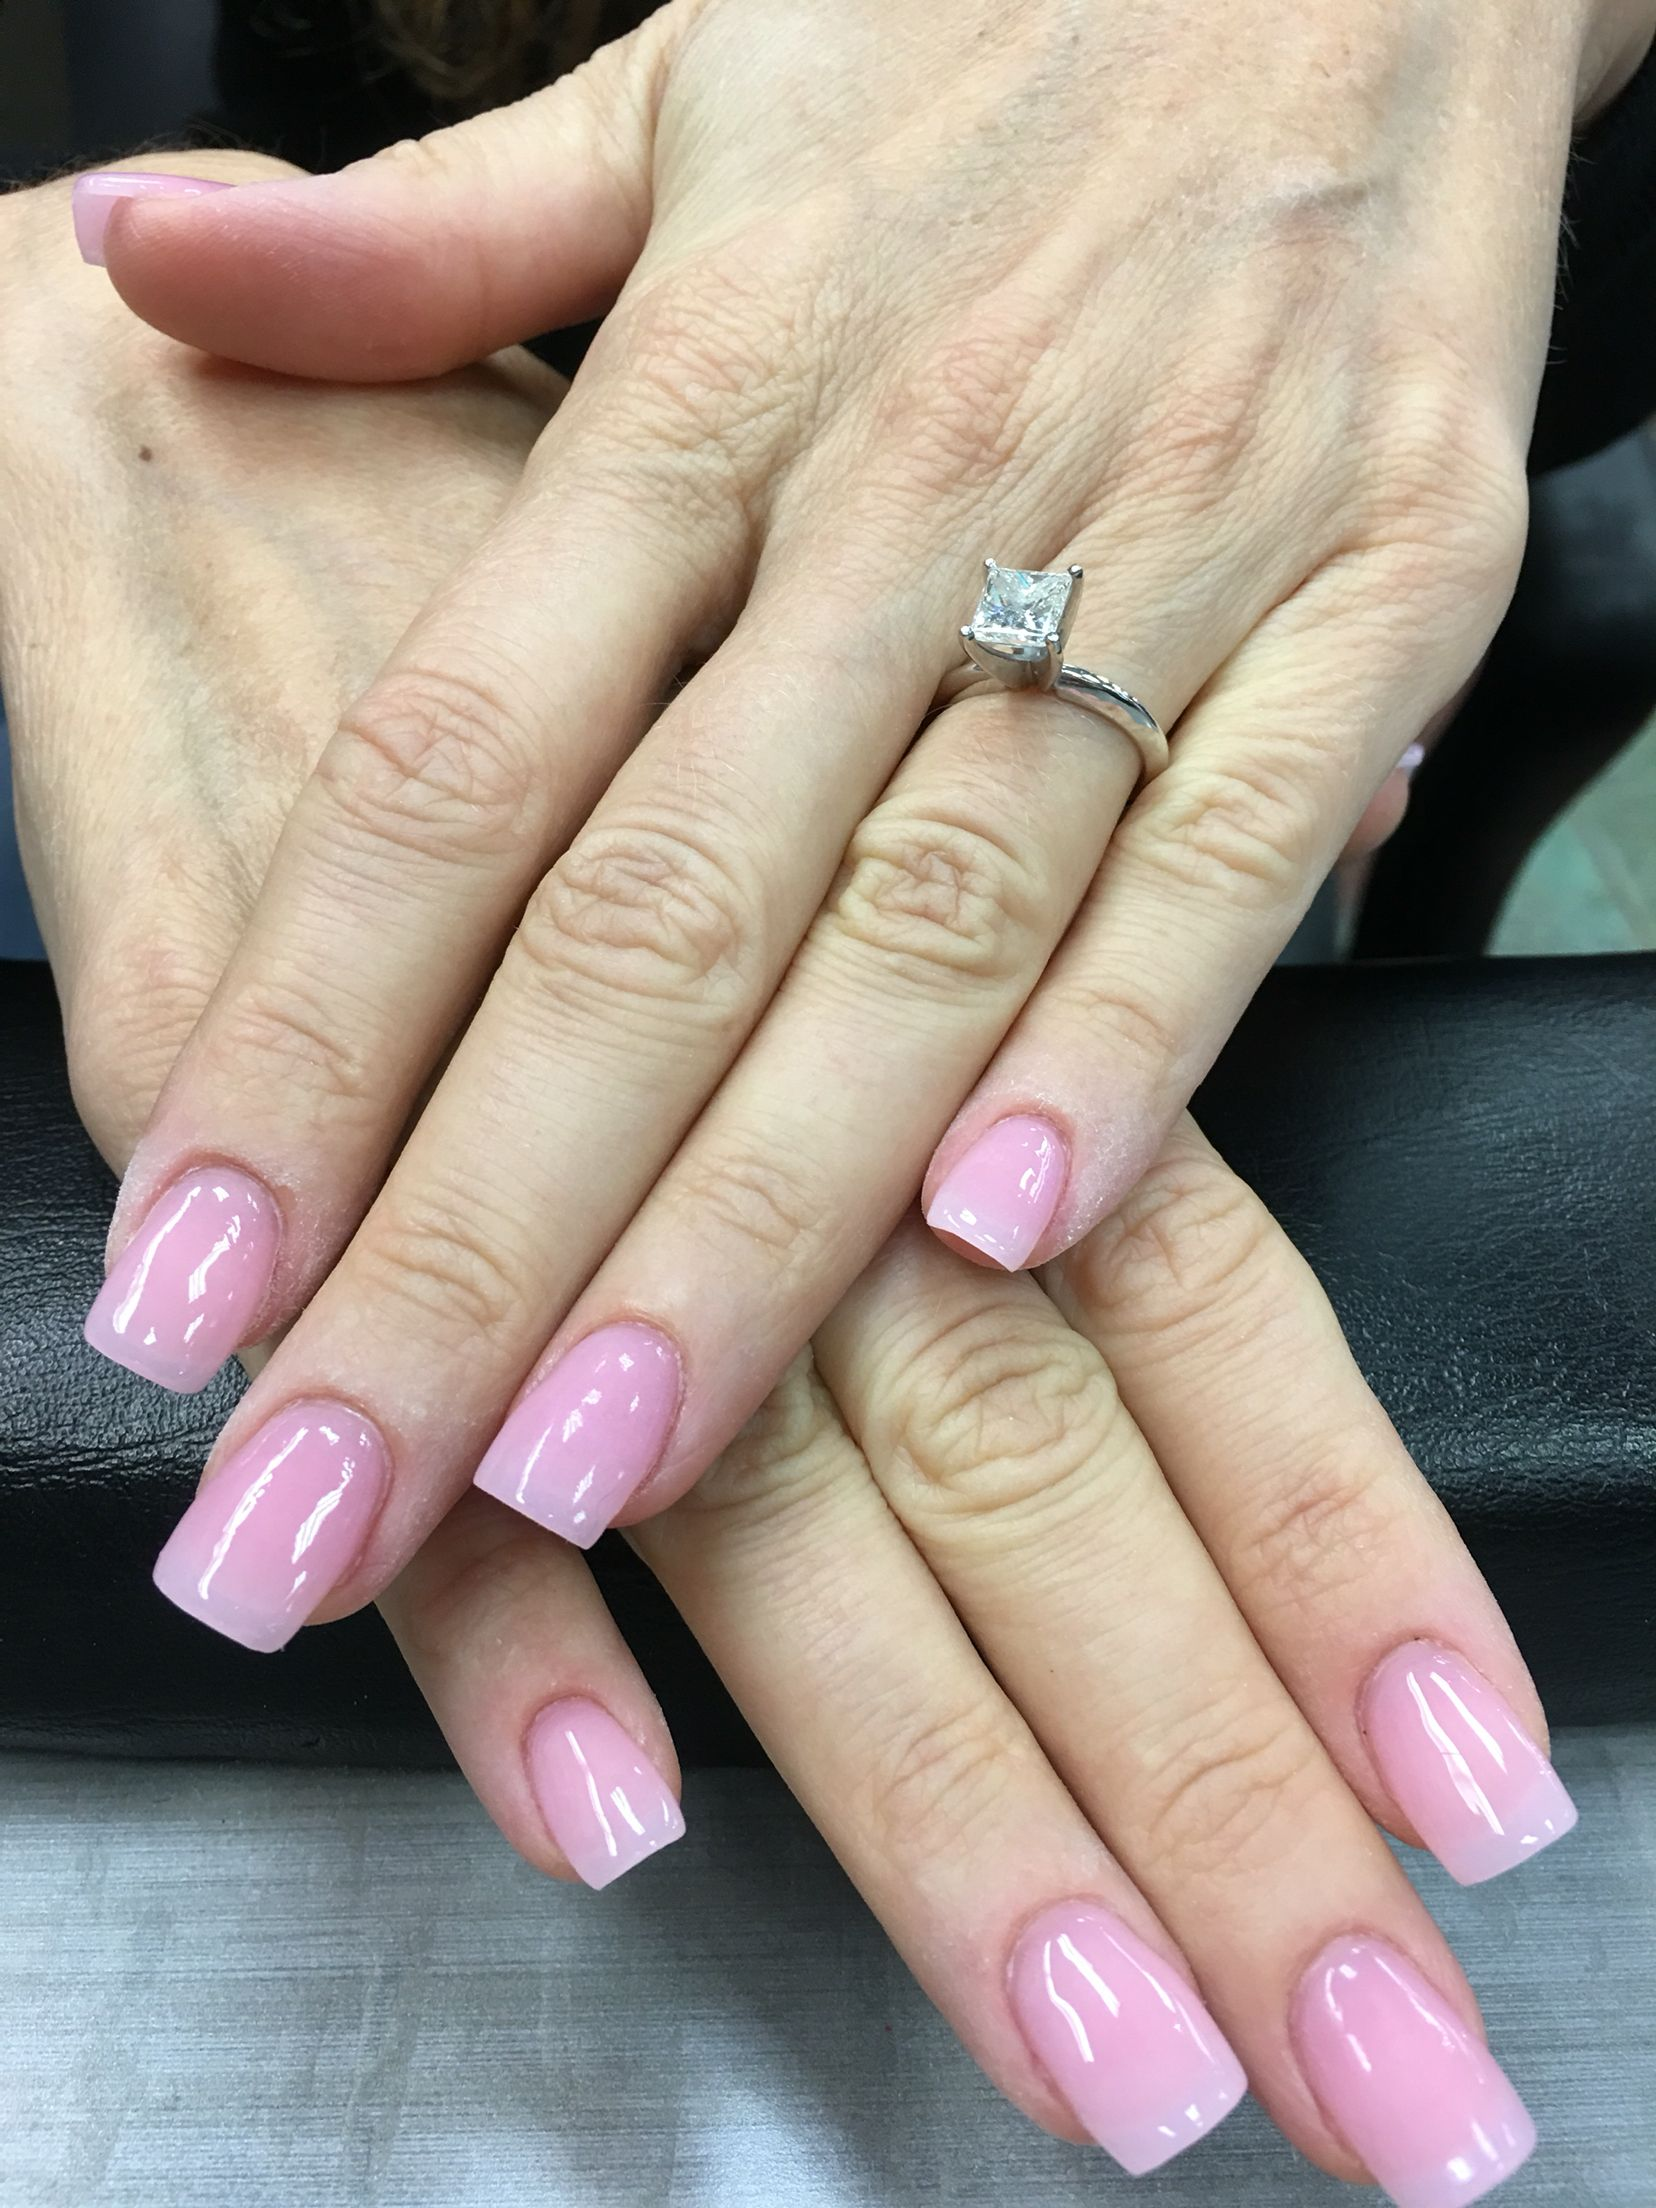 Nexgen dipping powder fullset with tips | More beautiful and ...